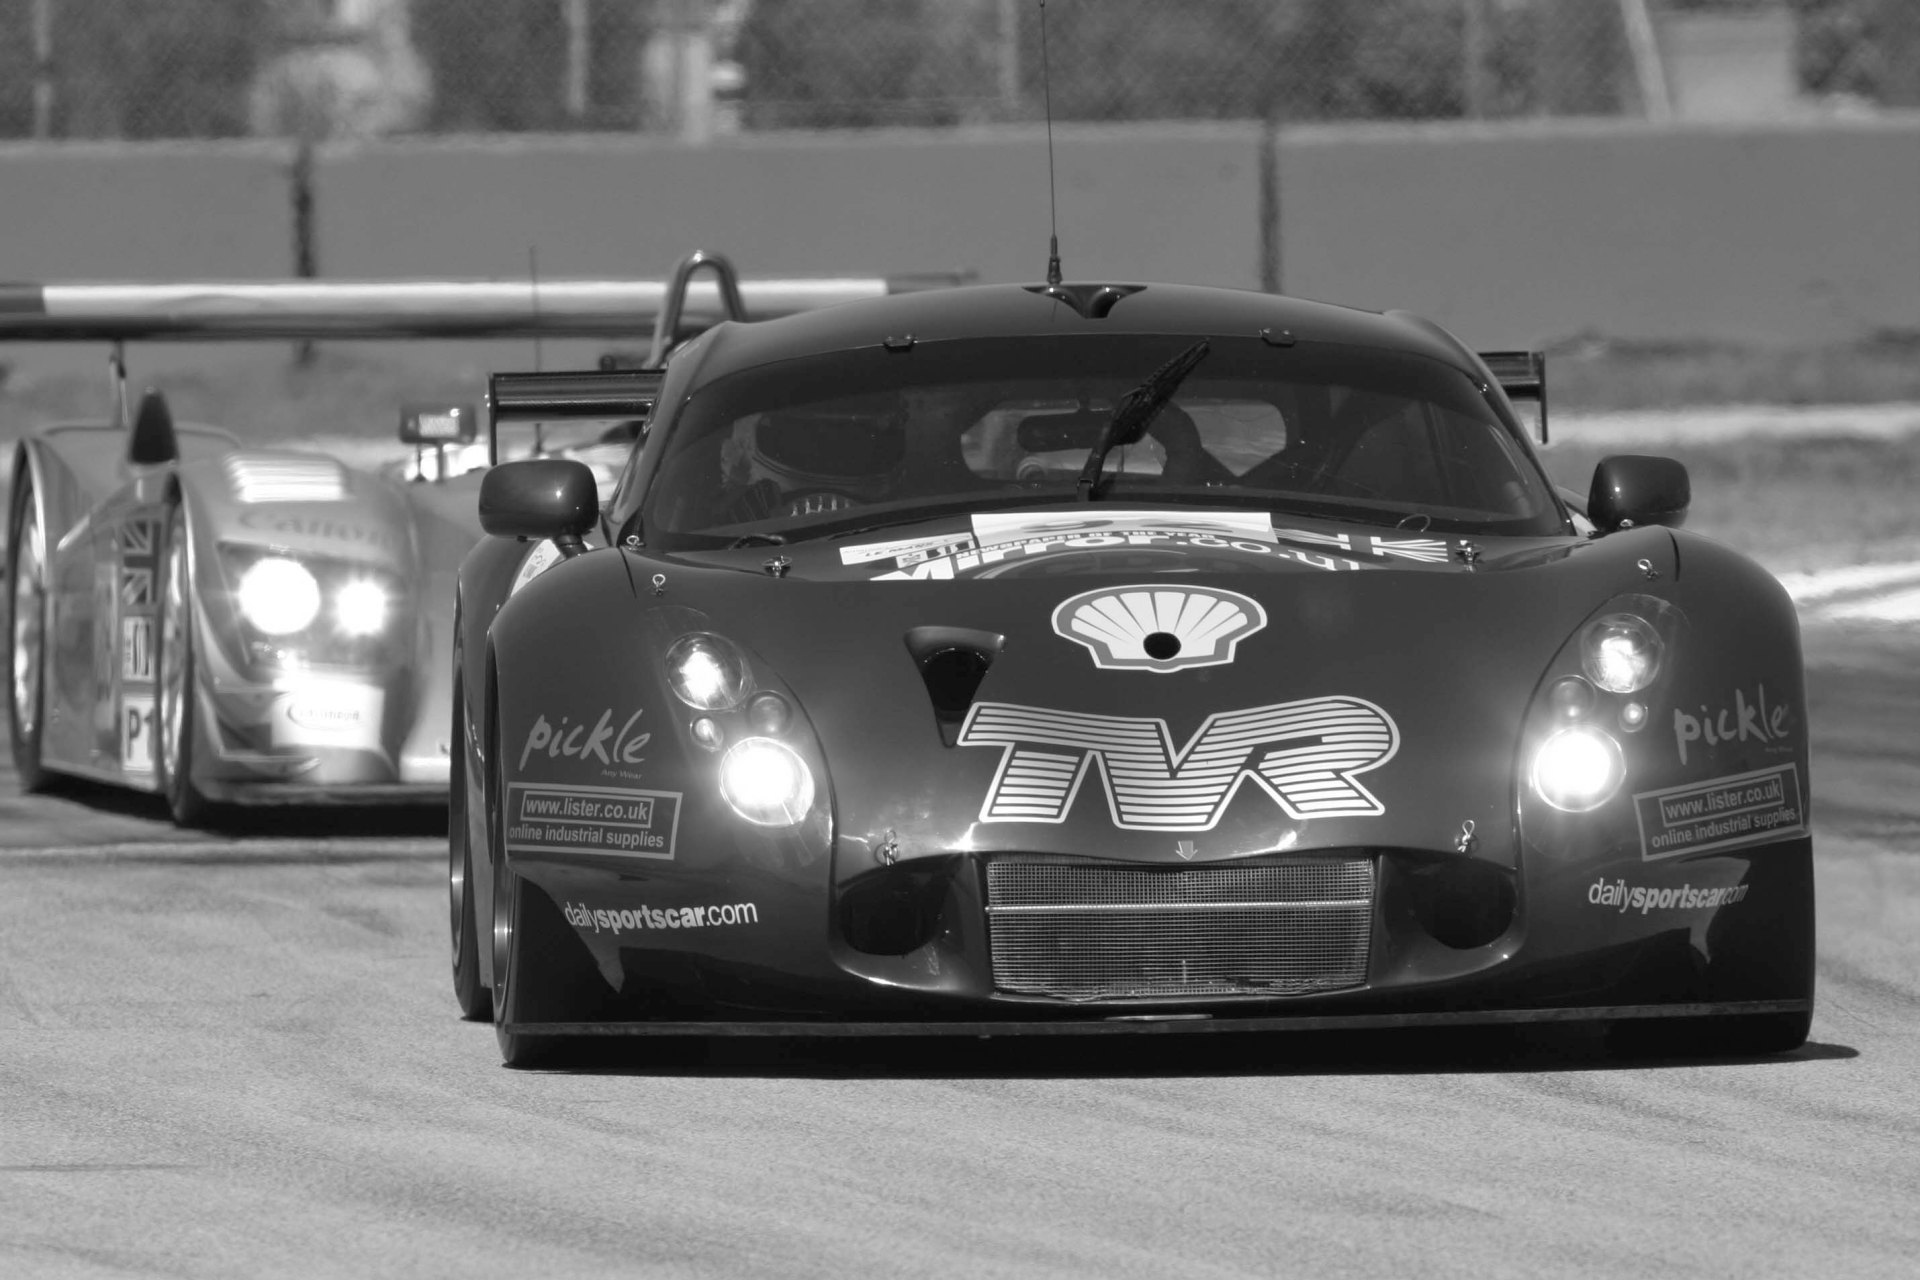 TVR racing at Le Mans in 2005.